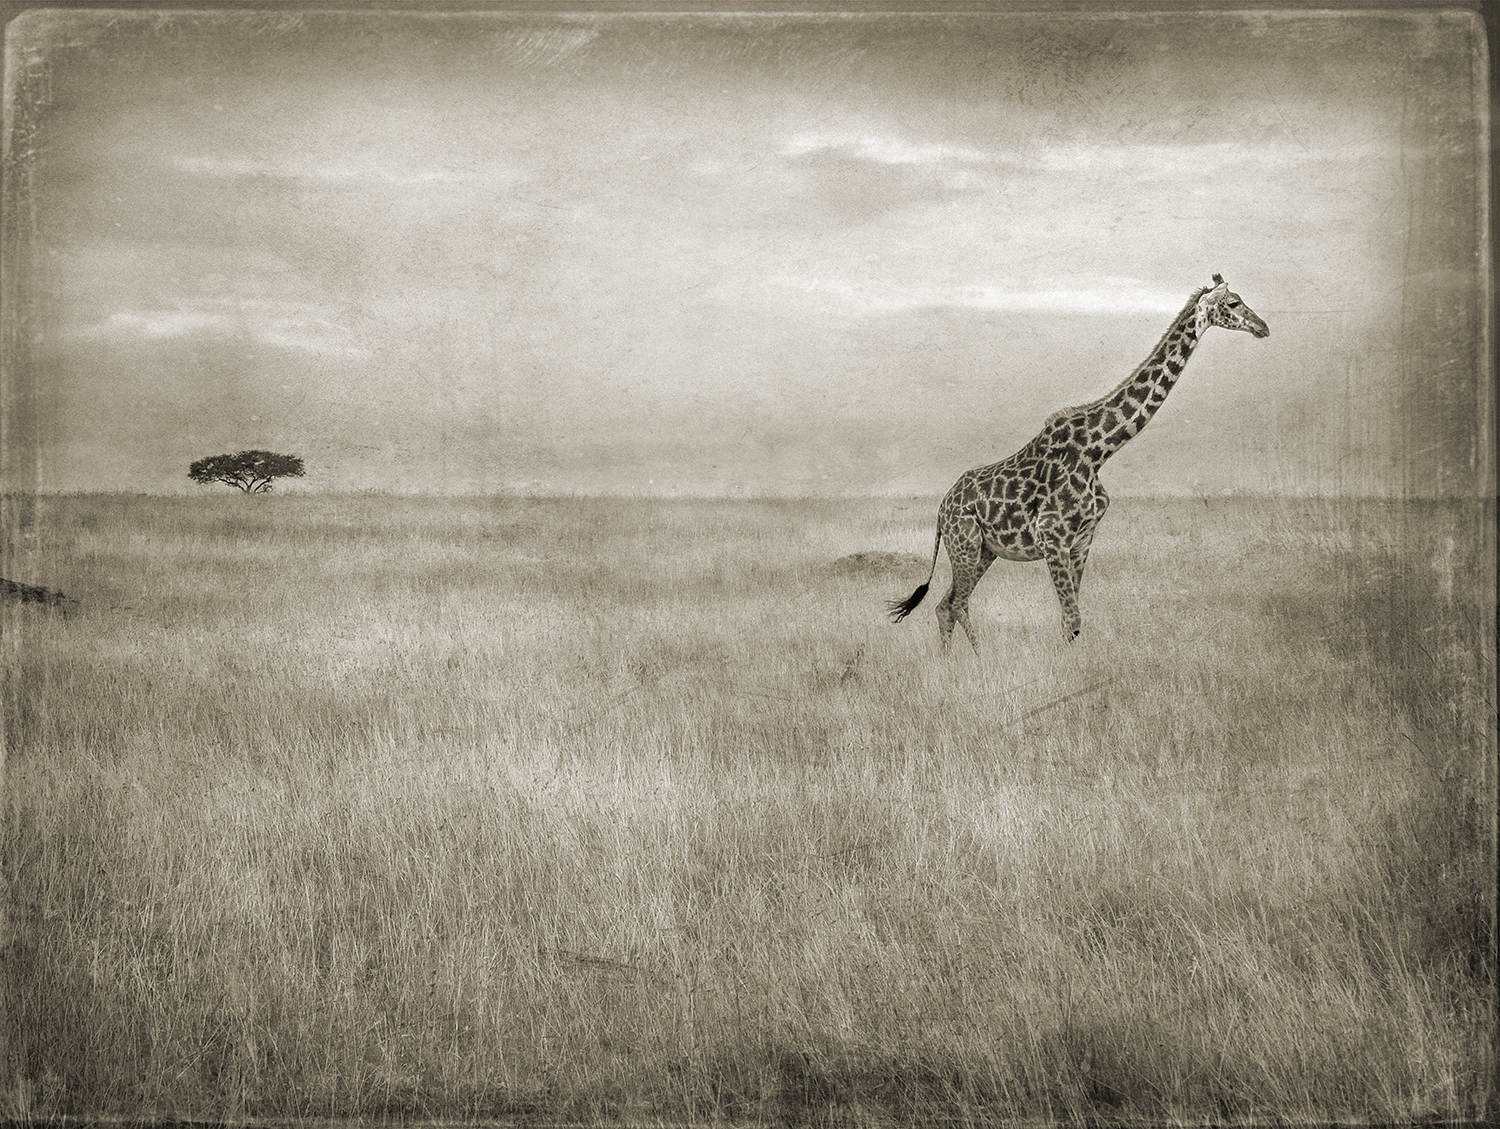 Lone Giraffe Lone Tree copy.jpg